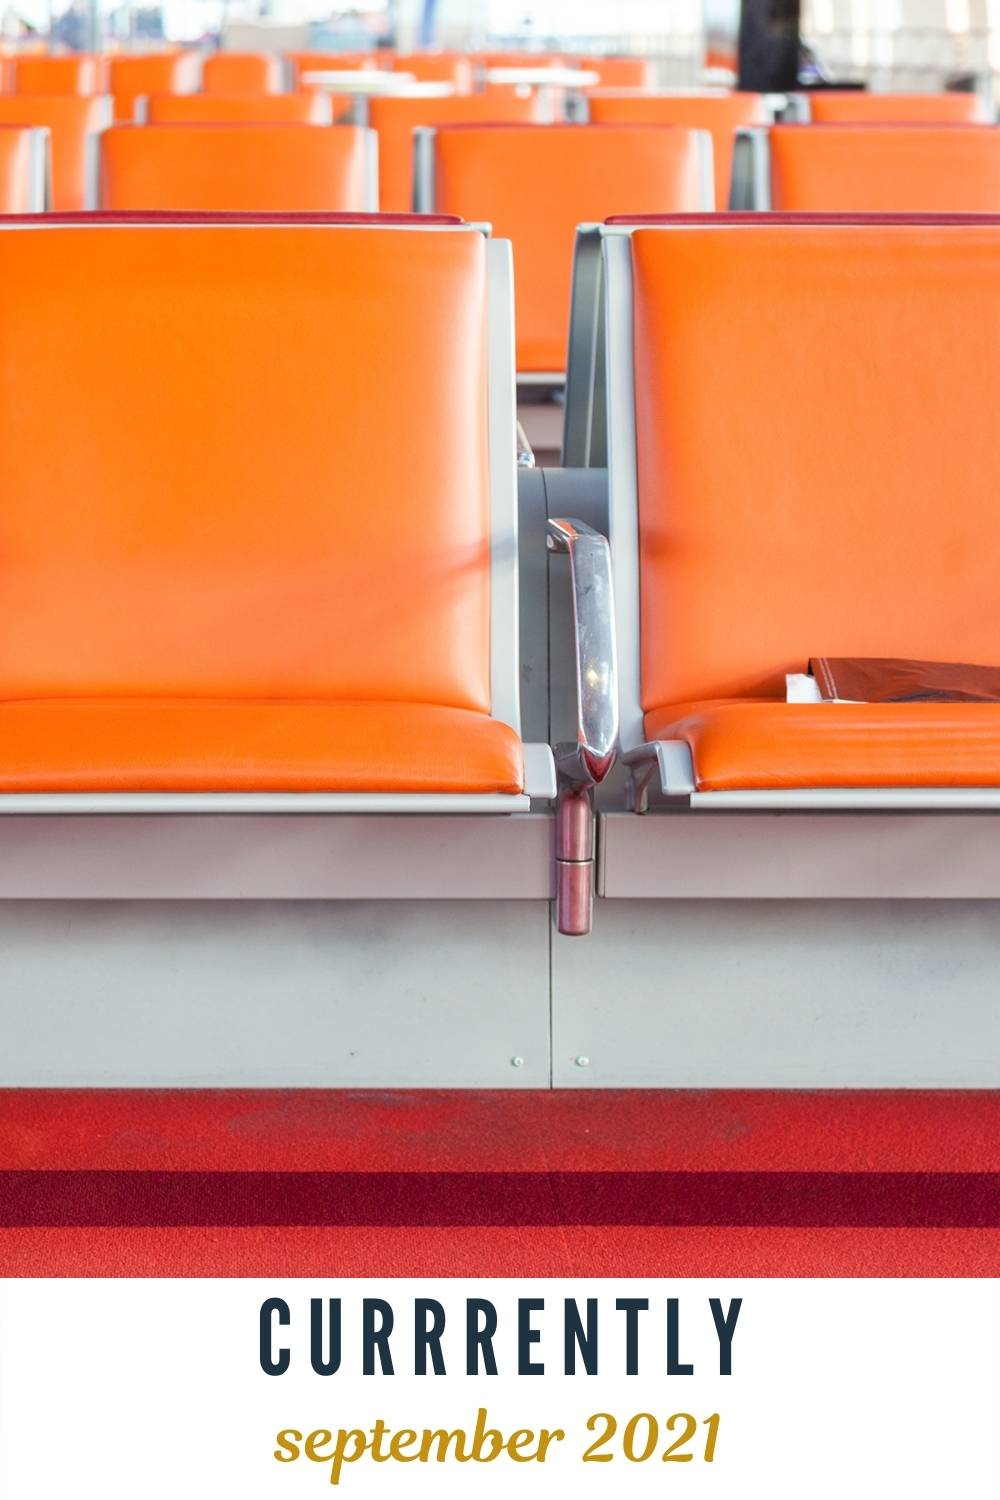 orange chairs in airport